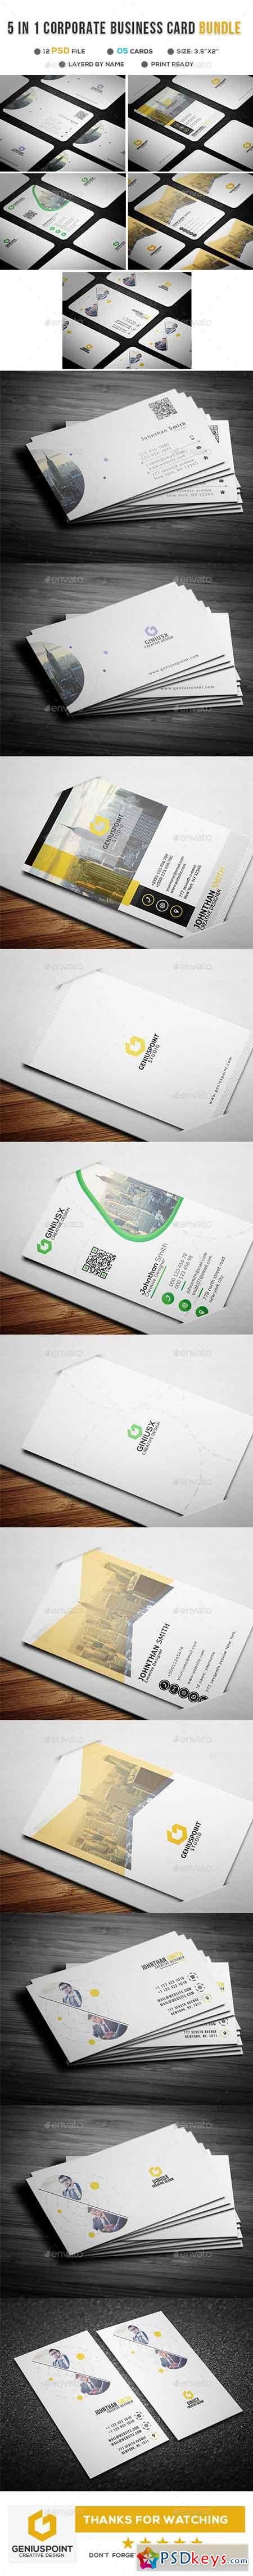 Business cards free download photoshop vector stock image via 5 in 1 borporate business card bundle 21736862 reheart Choice Image